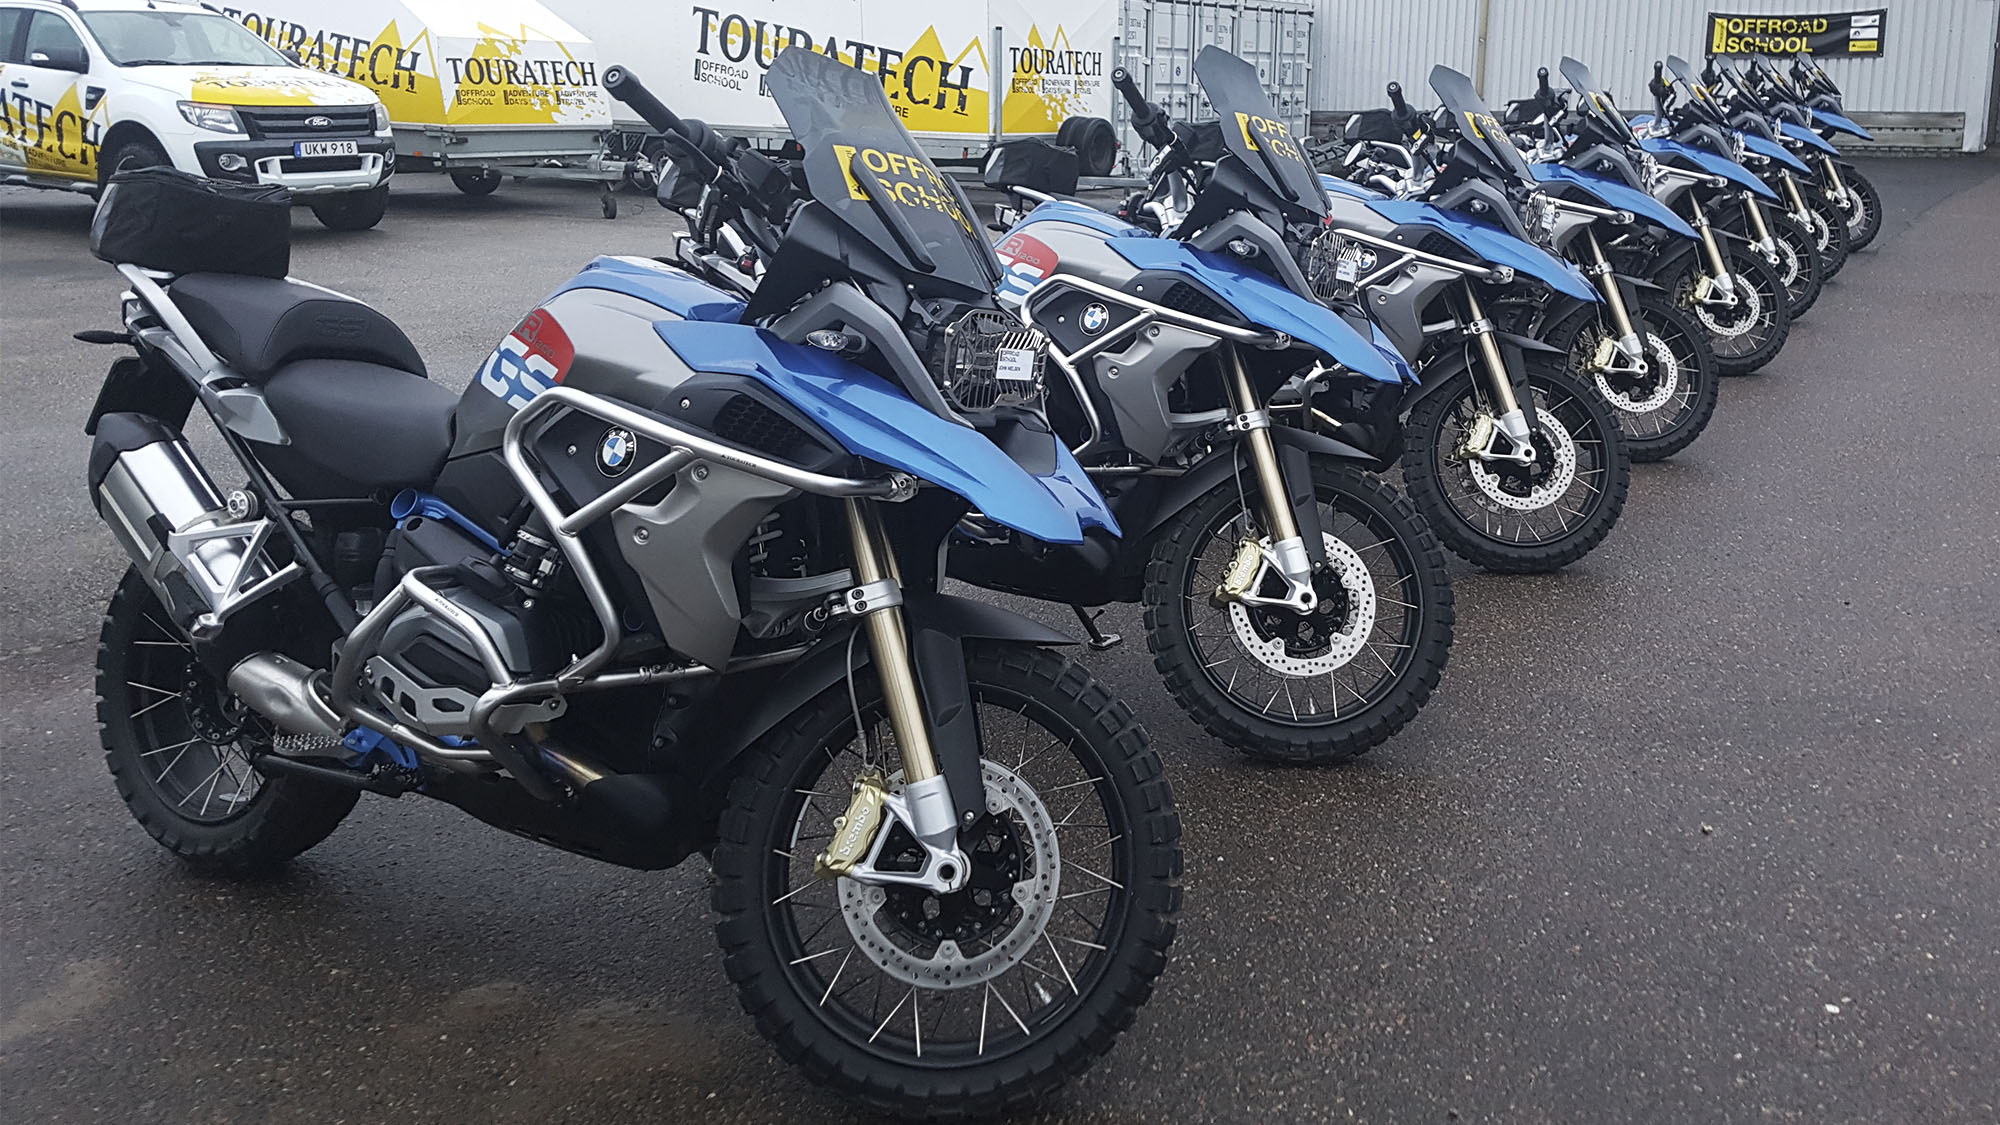 Klar for offroadkurs med Touratech Offroad Scholl